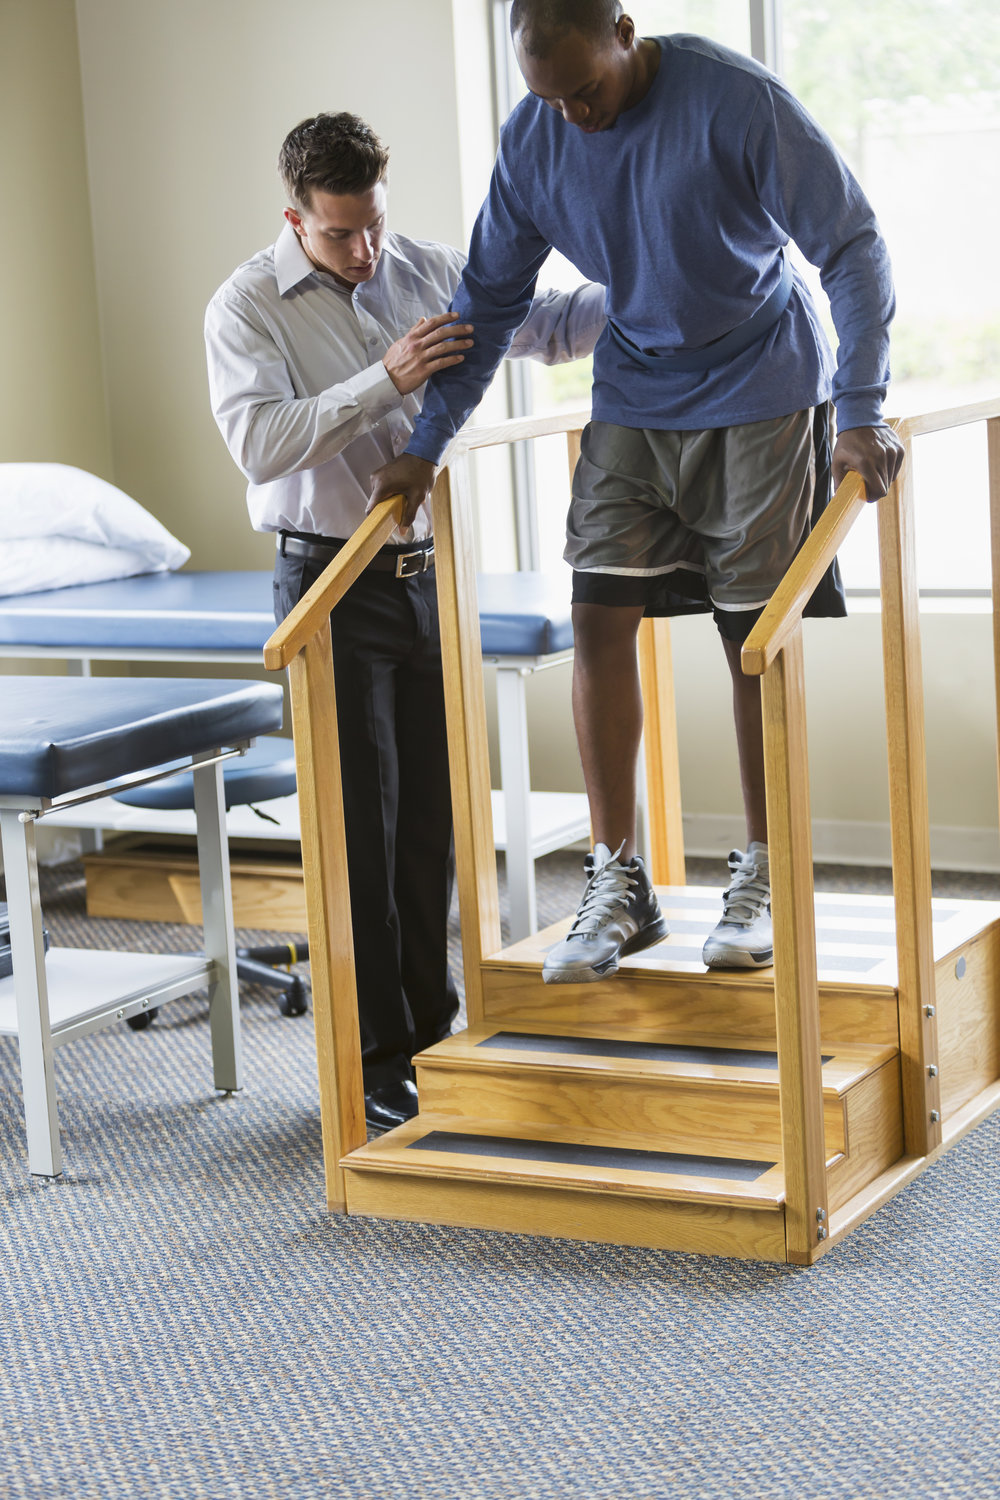 Physical therapy and rehabilitation is instrumental to full recovery from accident injuries.